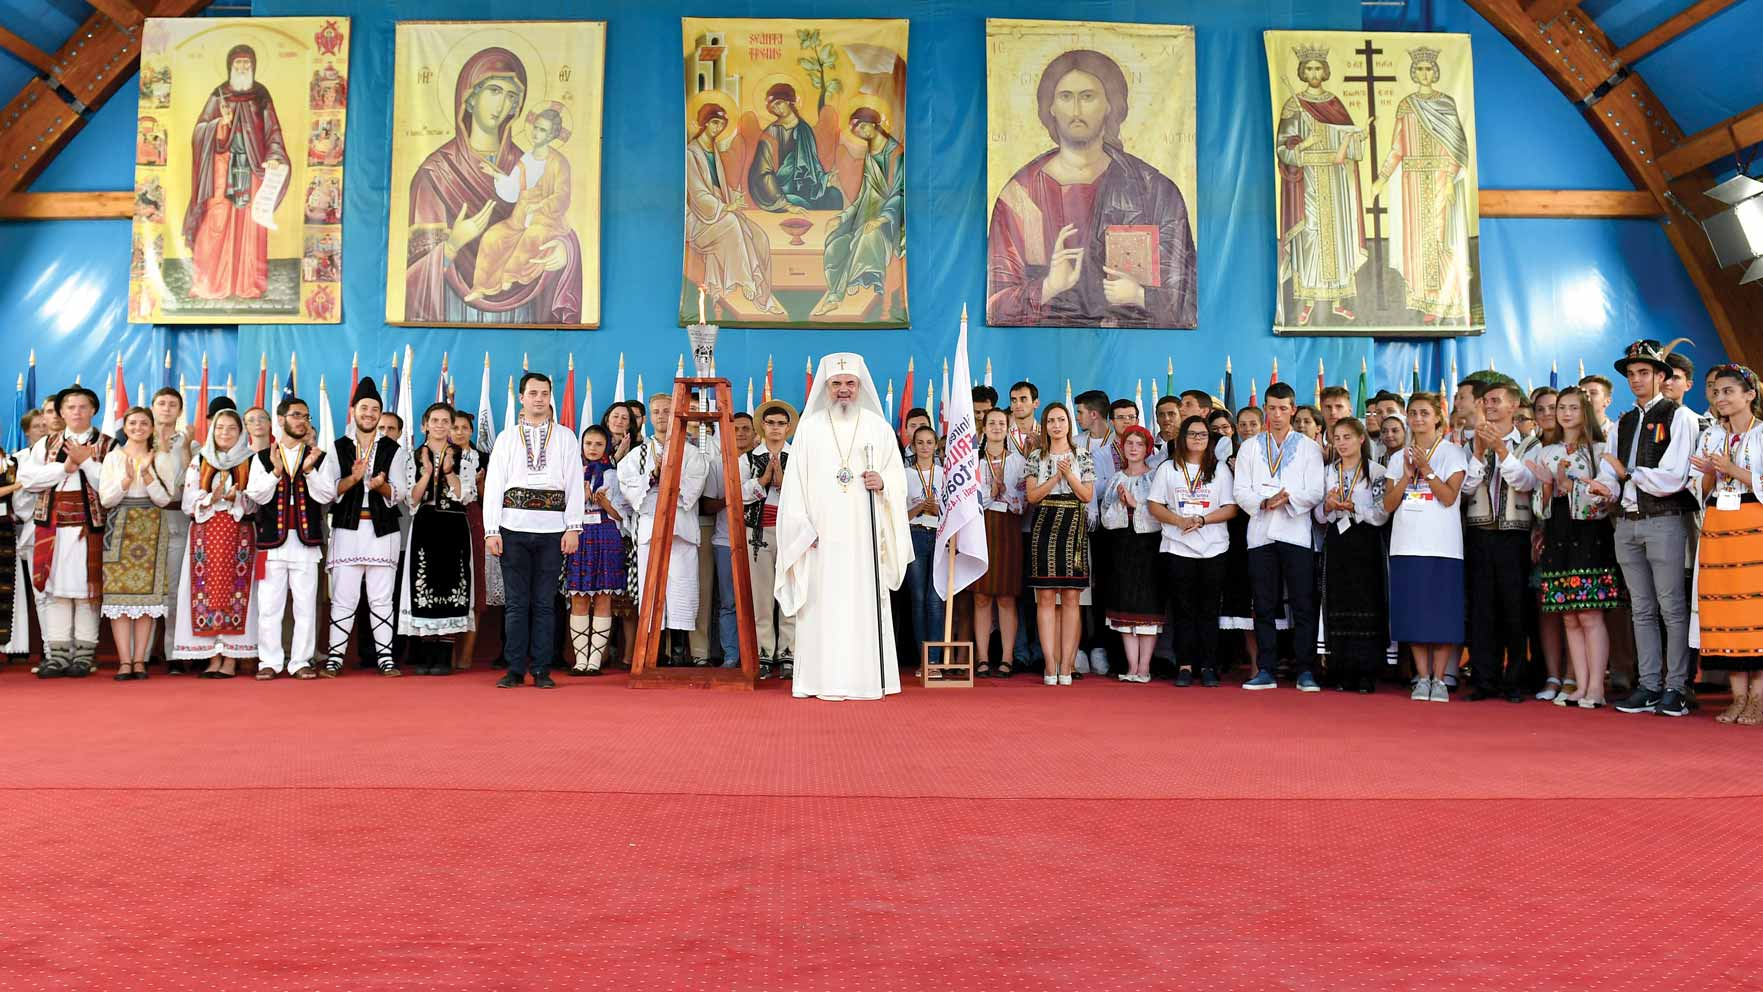 Educația creștină a tinerilor pentru cultivarea credinței ca lumină a vieții / Educating Christian youth to cultivate faith as light of life